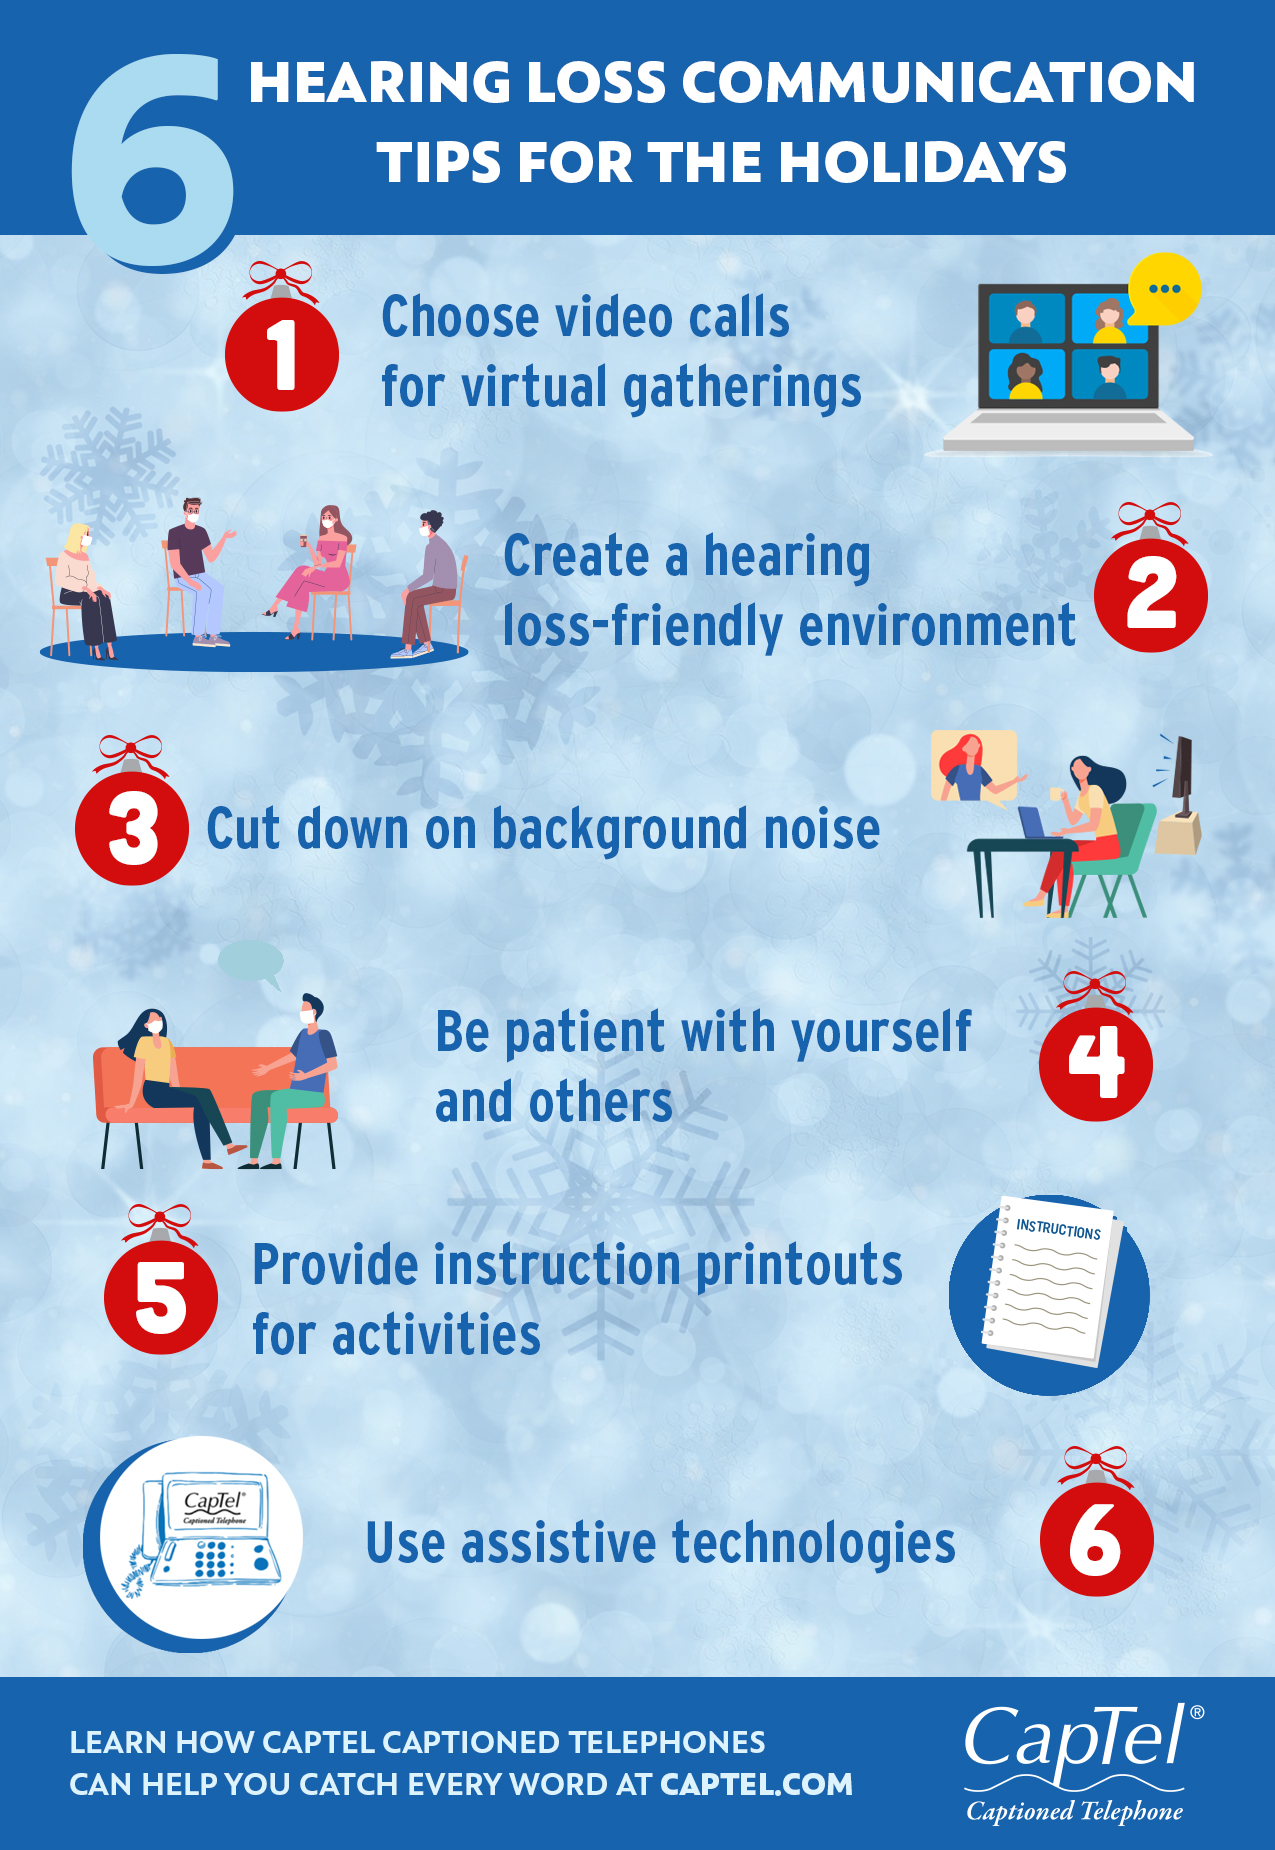 Find hearing loss communication tips for the holidays in this blog.